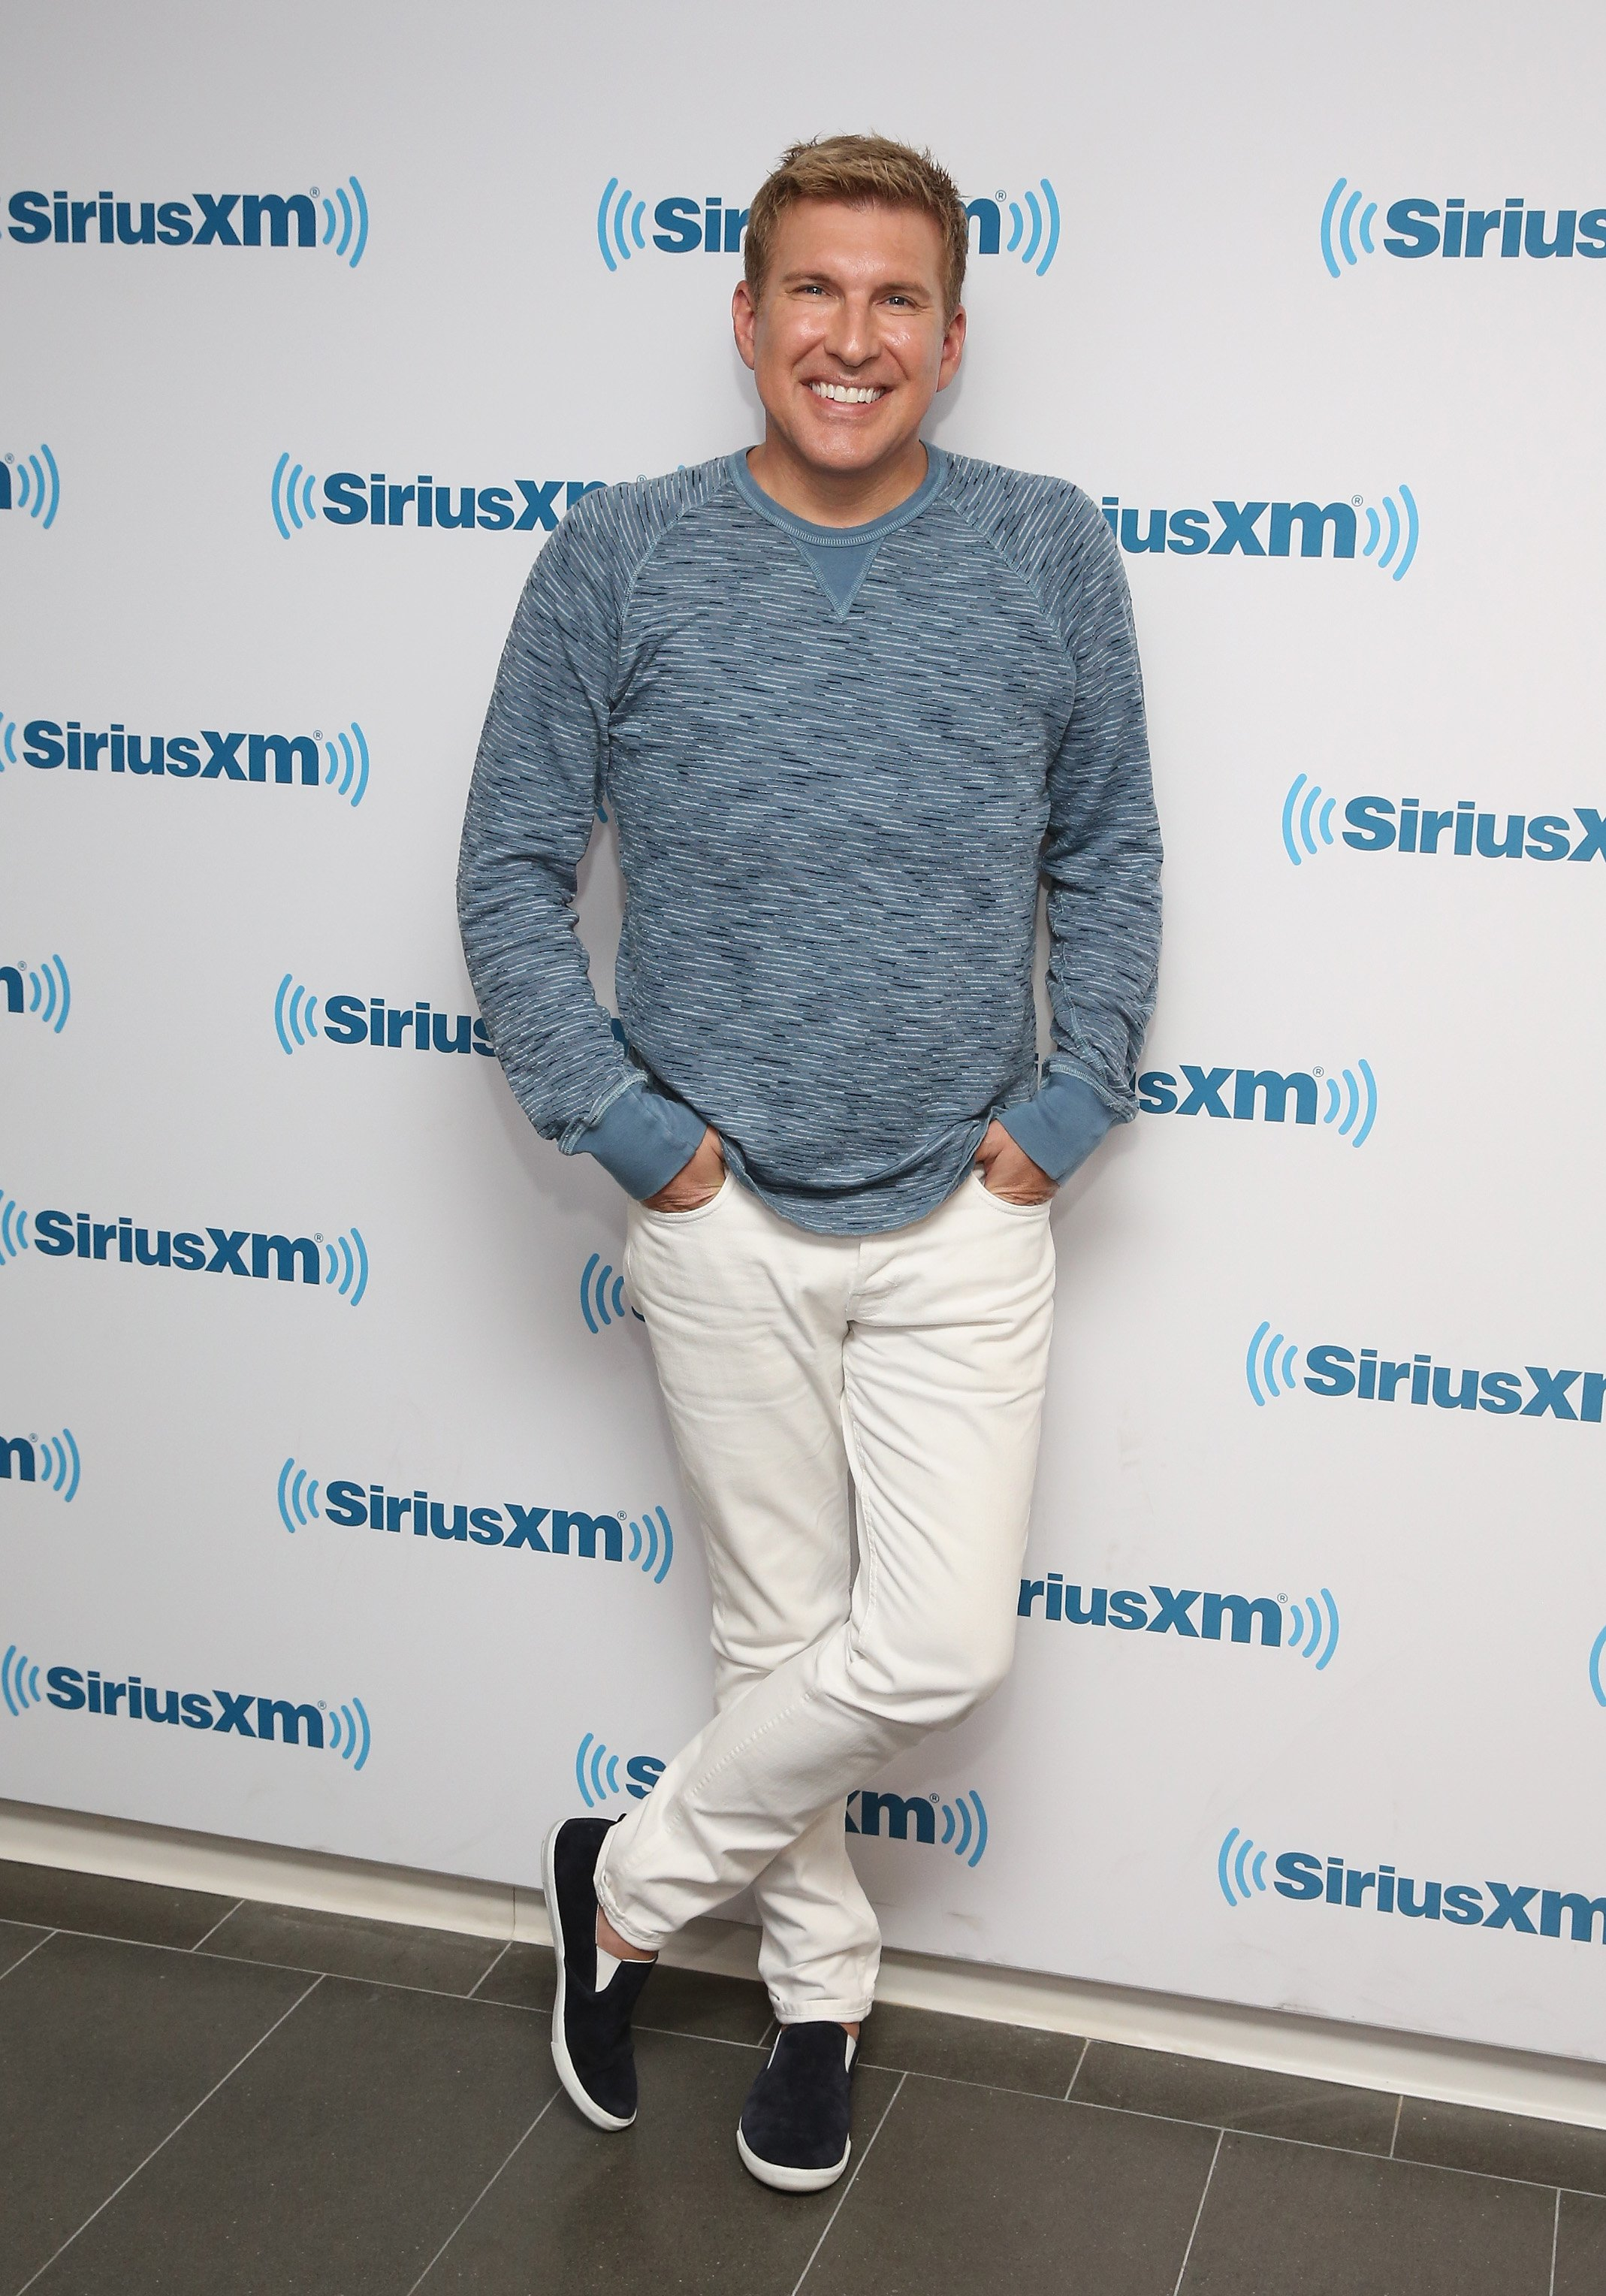 Todd Chrisley in New York visiting SiriusXM Studios on May 15, 2015. | Photo: Getty Images